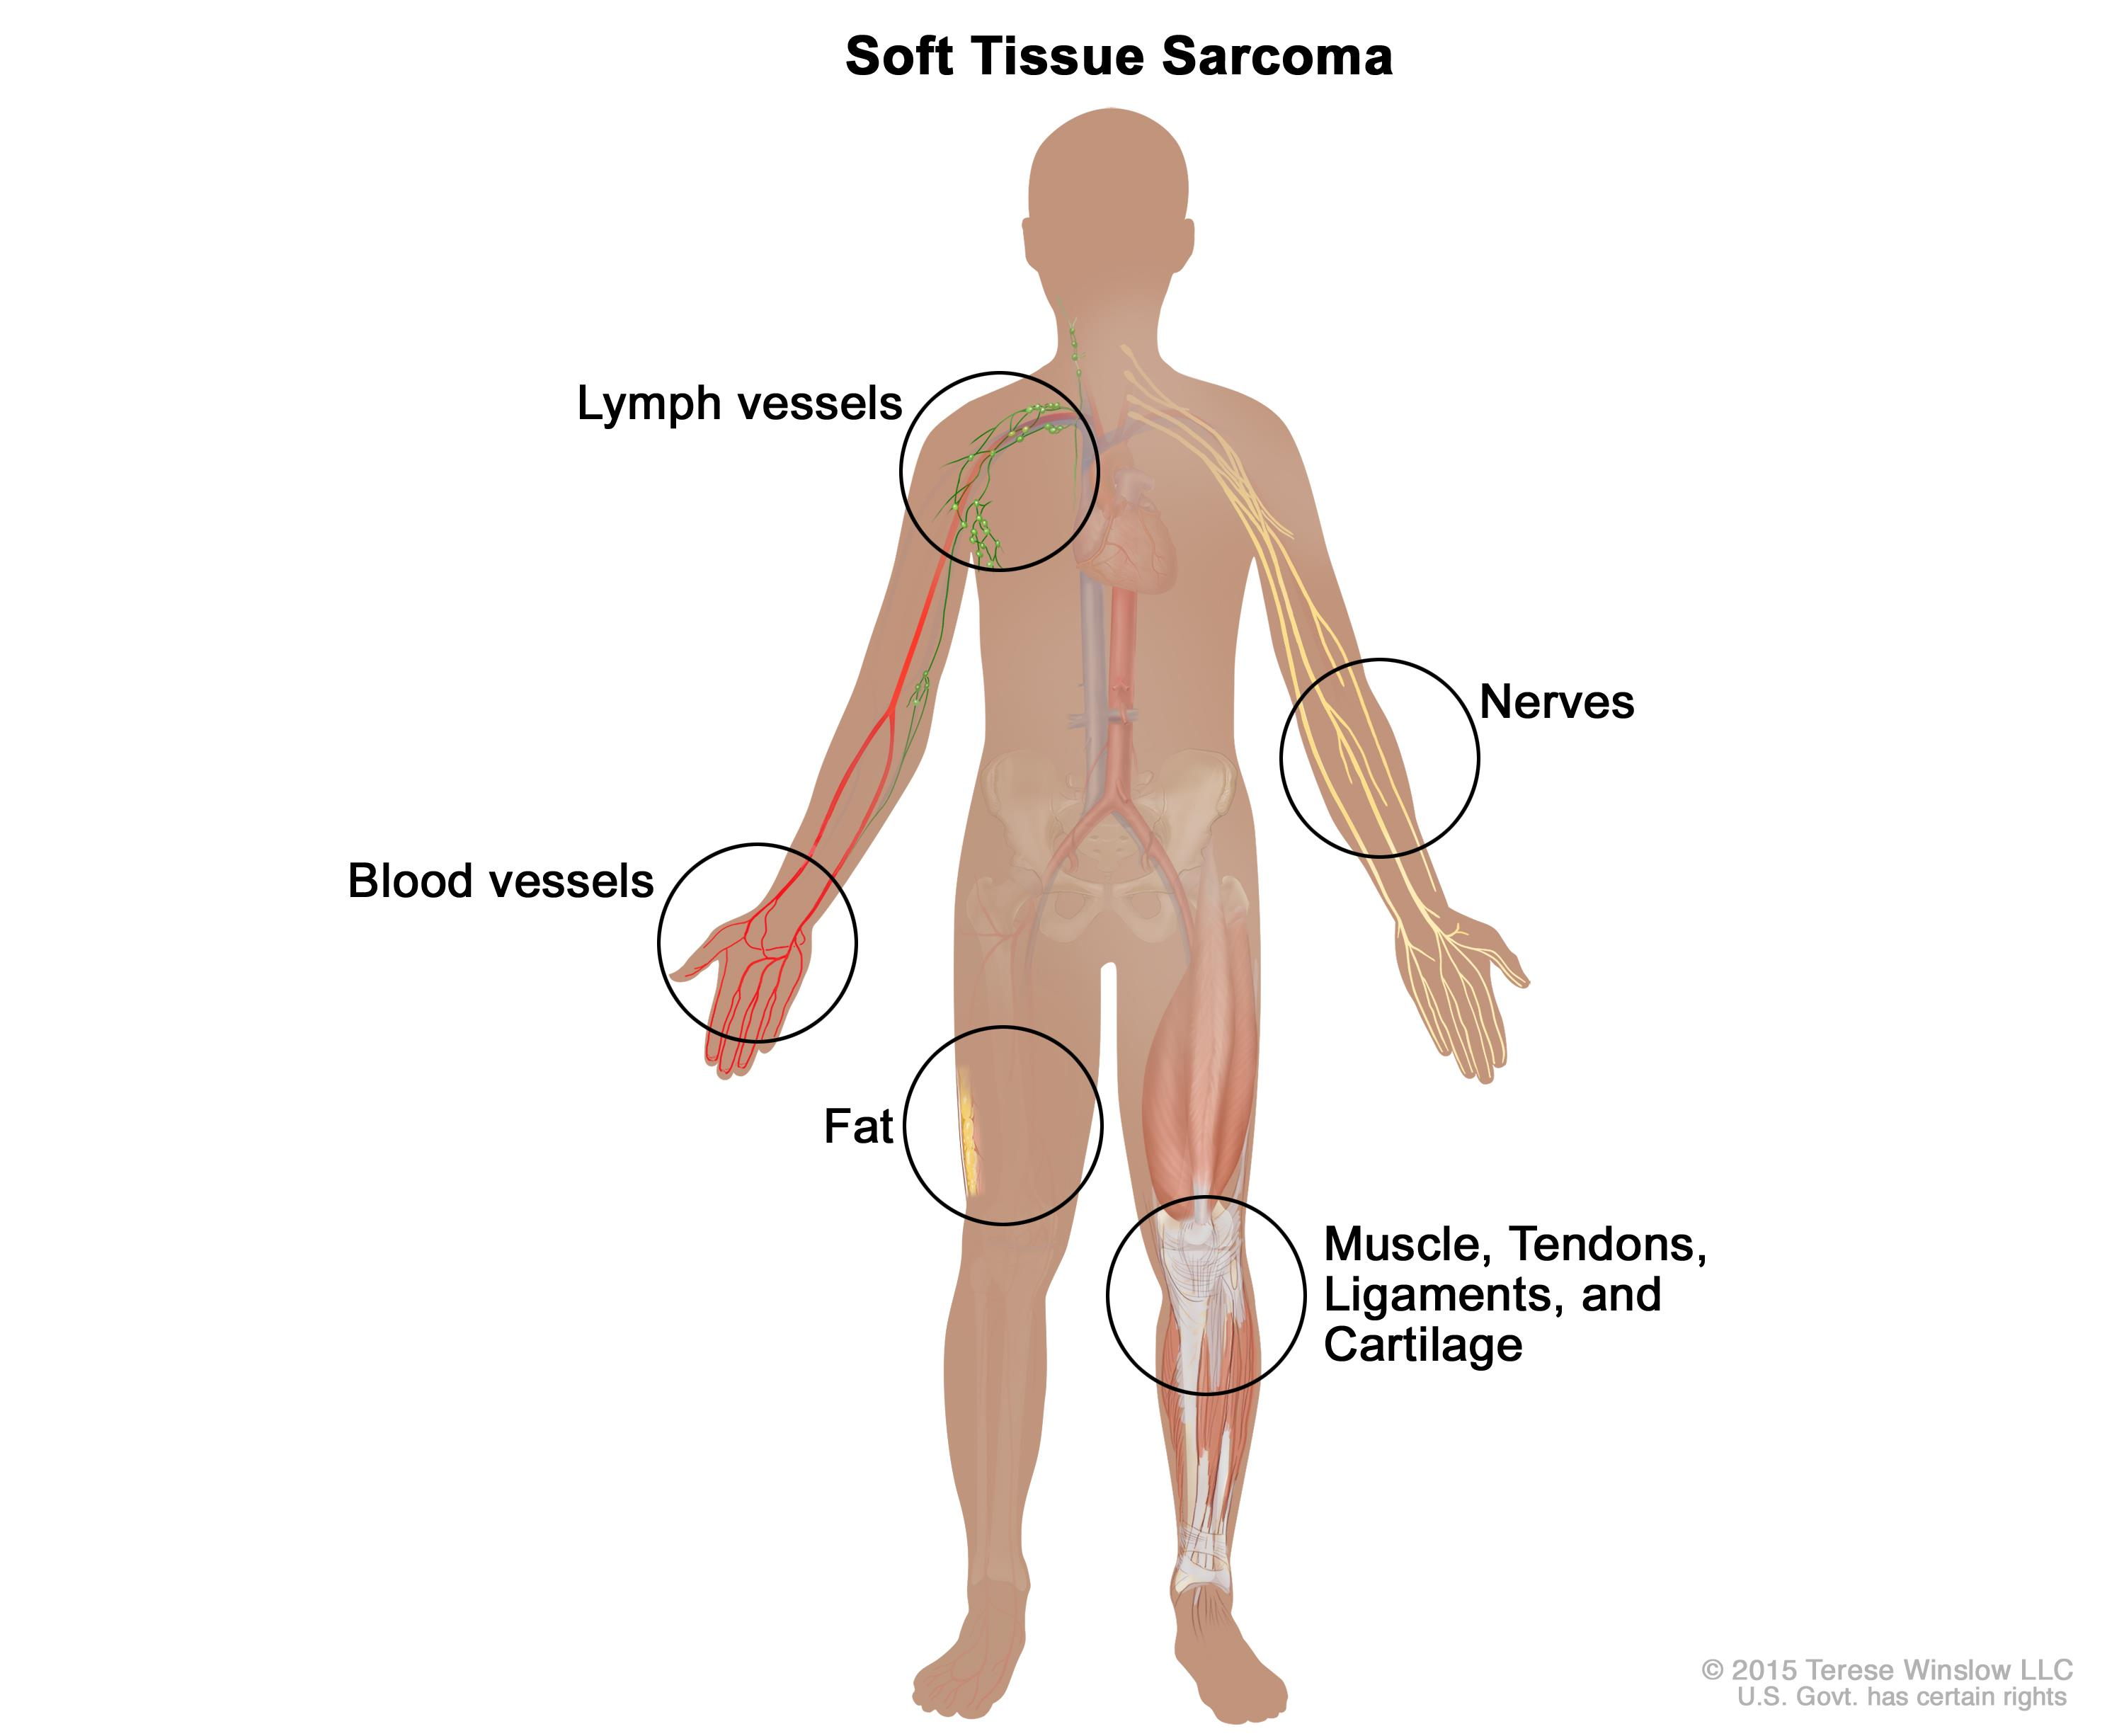 Soft tissue sarcoma; drawing shows different types of tissue in the body where soft tissue sarcomas form, including the lymph vessels, blood vessels, fat, muscles, tendons, ligaments, cartilage, and nerves.